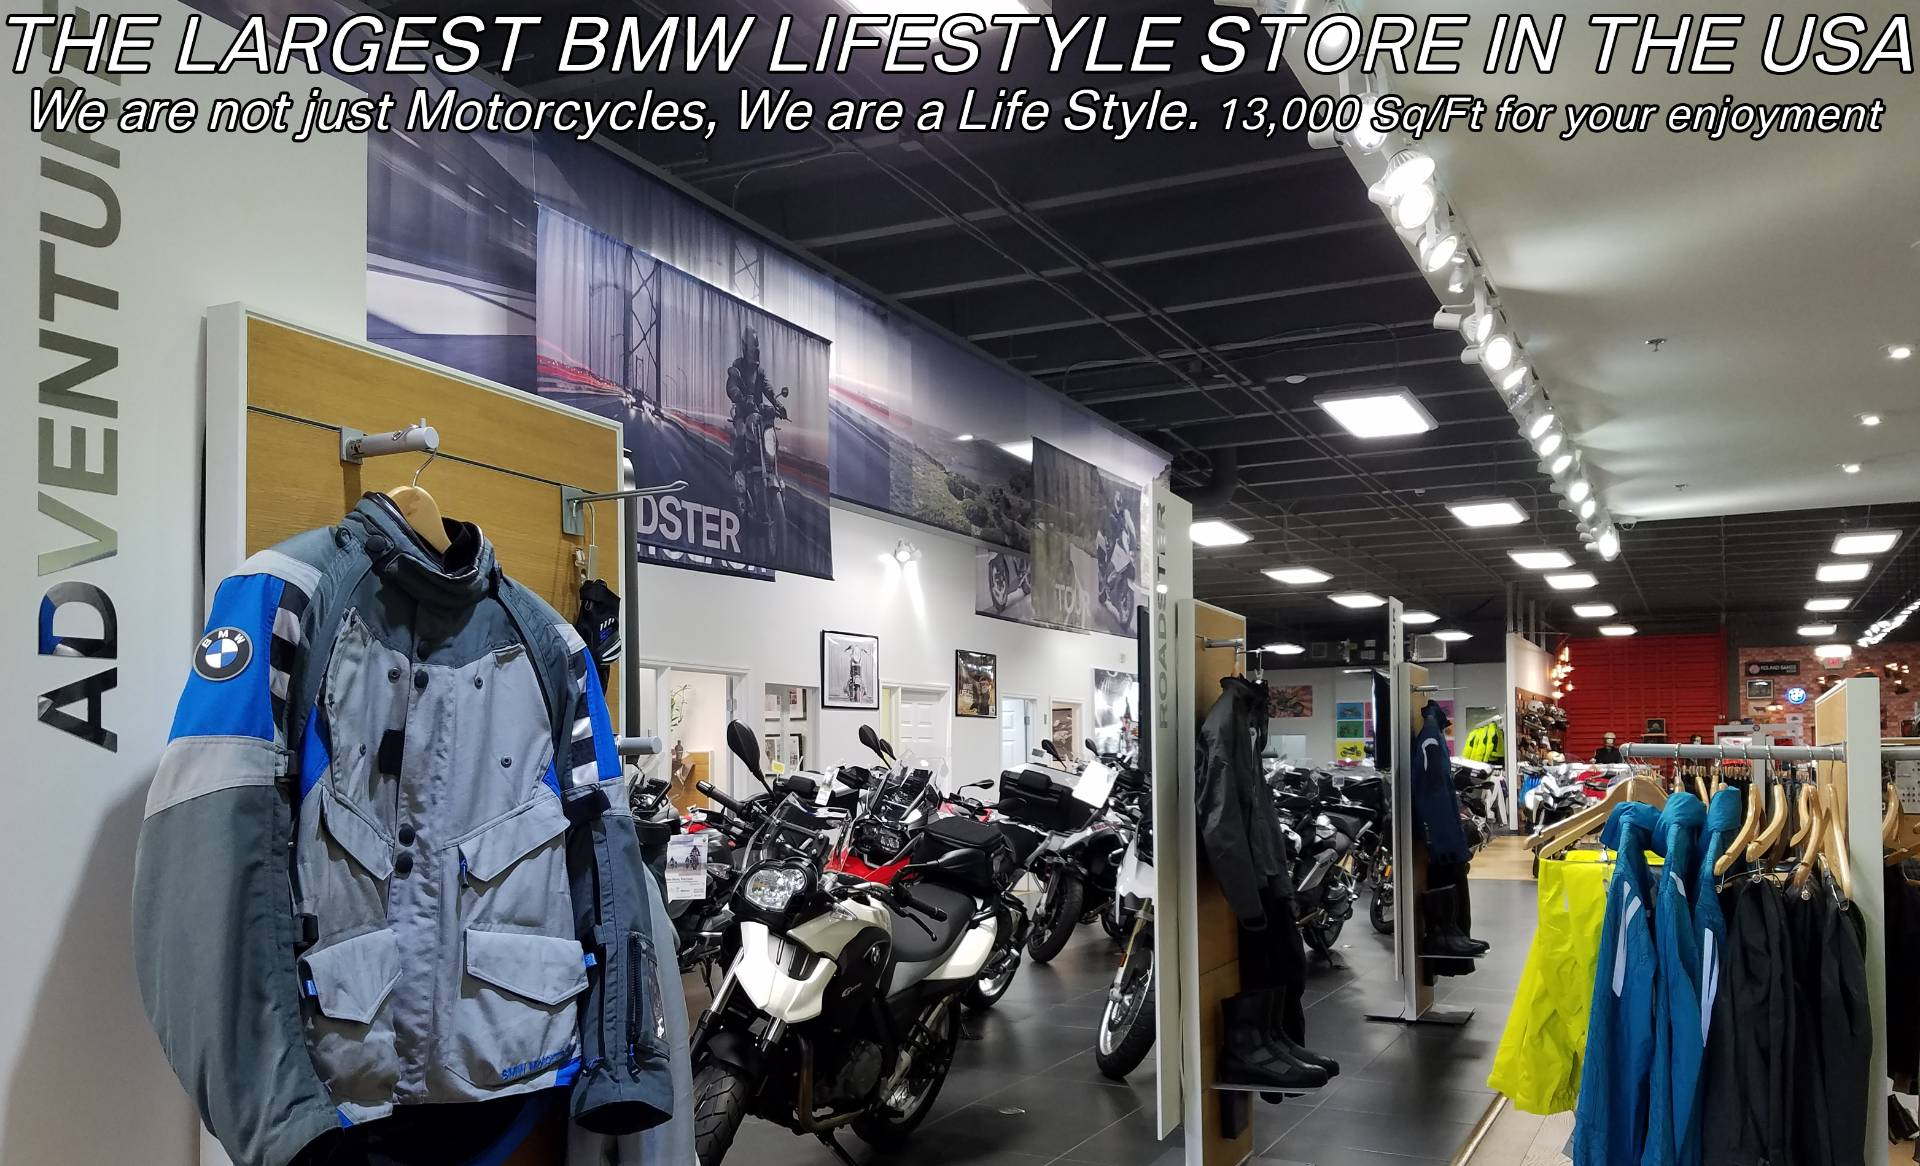 New 2019 BMW R nine T for sale, BMW R nineT for sale, BMW Motorcycle RnineT, BMW Motorcycles of Miami, Motorcycles of Miami, Motorcycles Miami - Photo 47